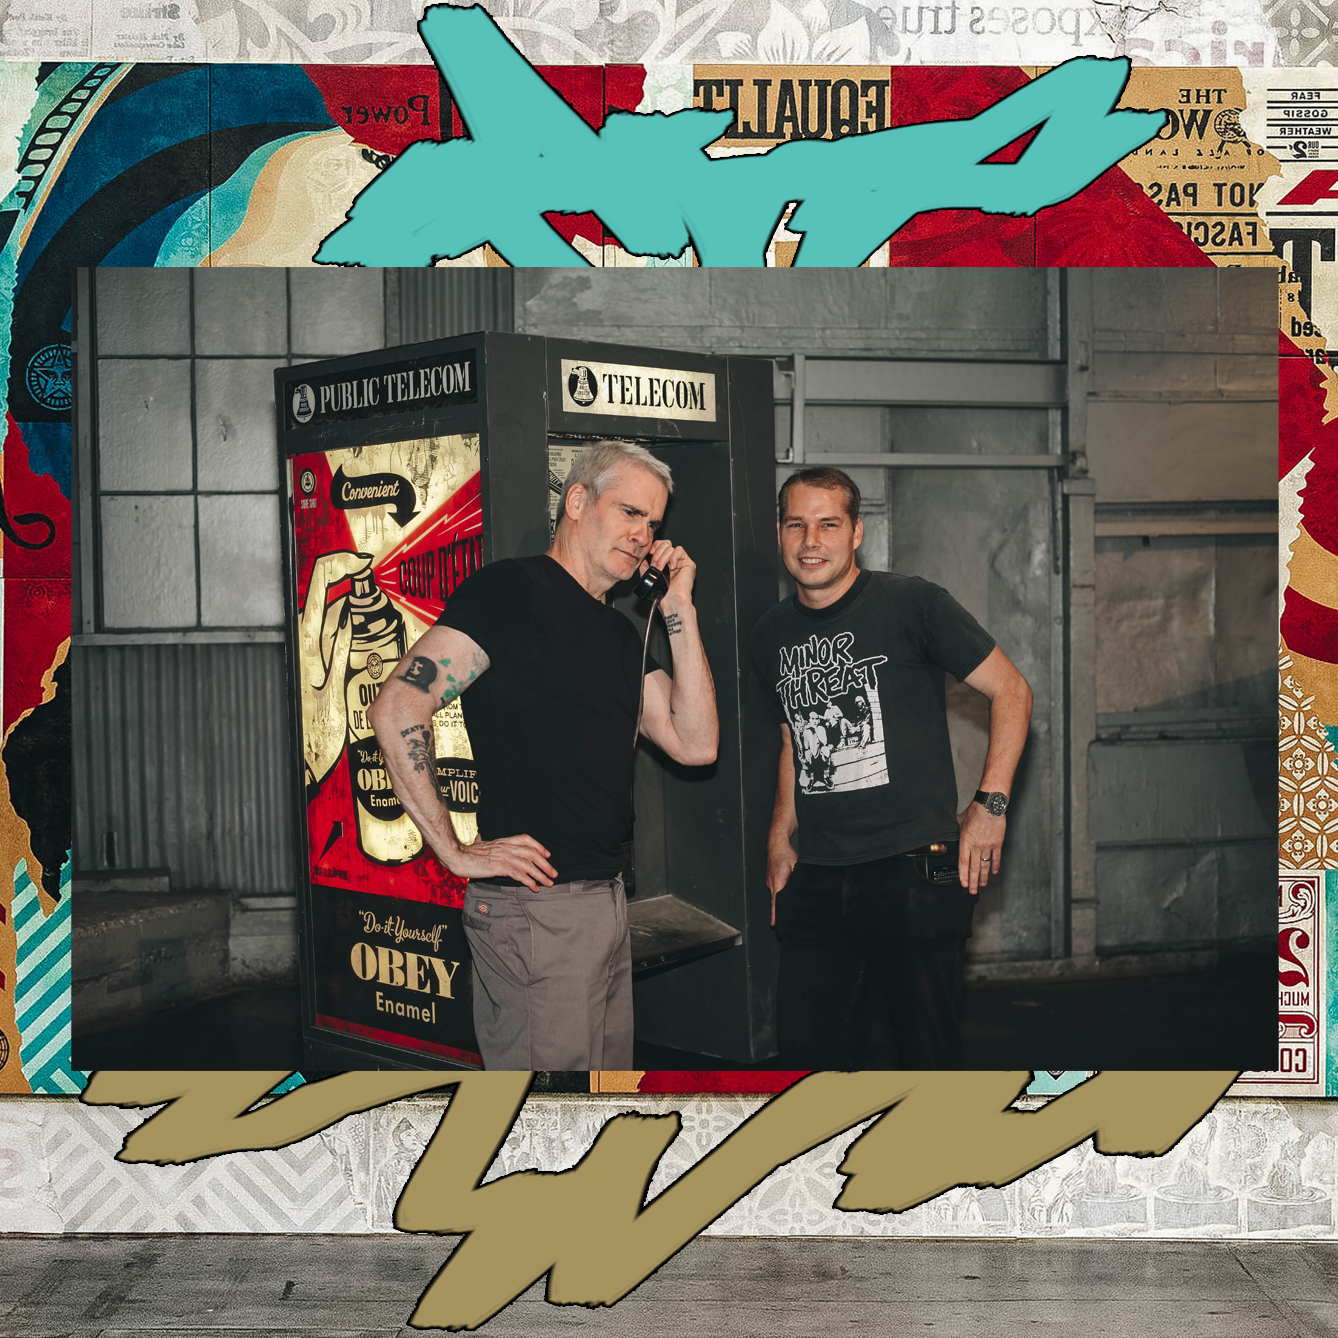 HENRY ROLLINS AND SHEPARD FAIREY IN FRONT OF JOHN TRACY'S PHONE BOOTH INSTALLATION / PHOTO CREDIT: SHEPARD FAIREY /  DESIGN CREDIT: VANESSA ACOSTA